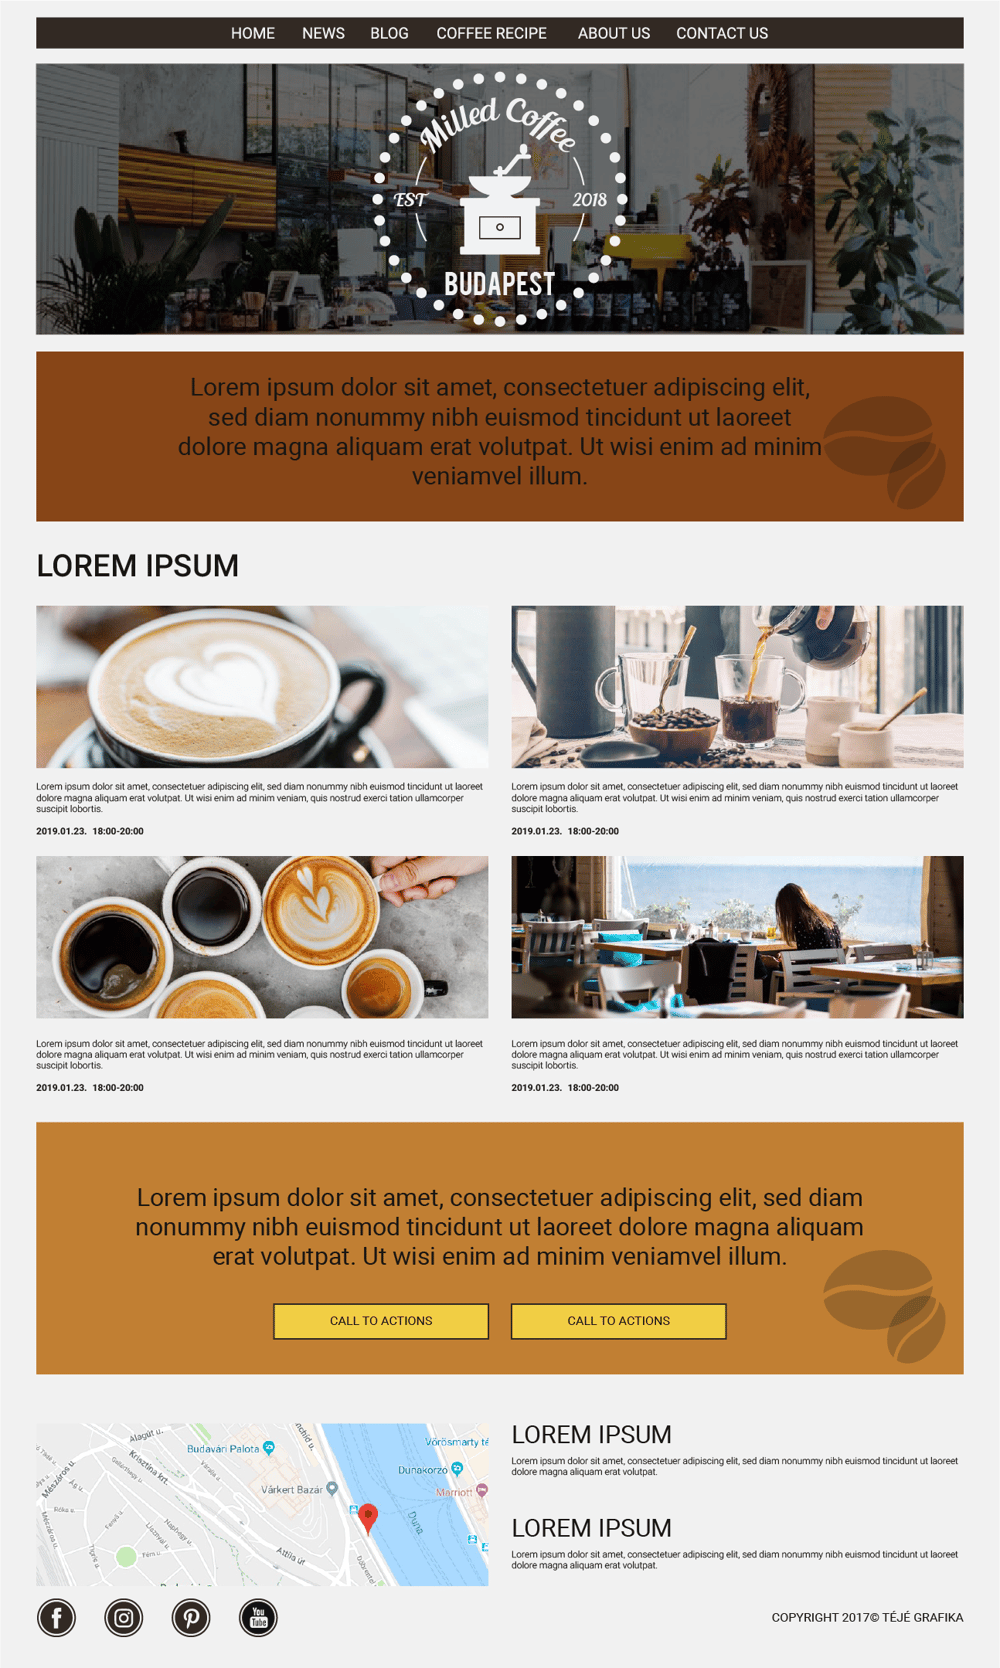 Milled Coffee Budapest - image 1 - student project